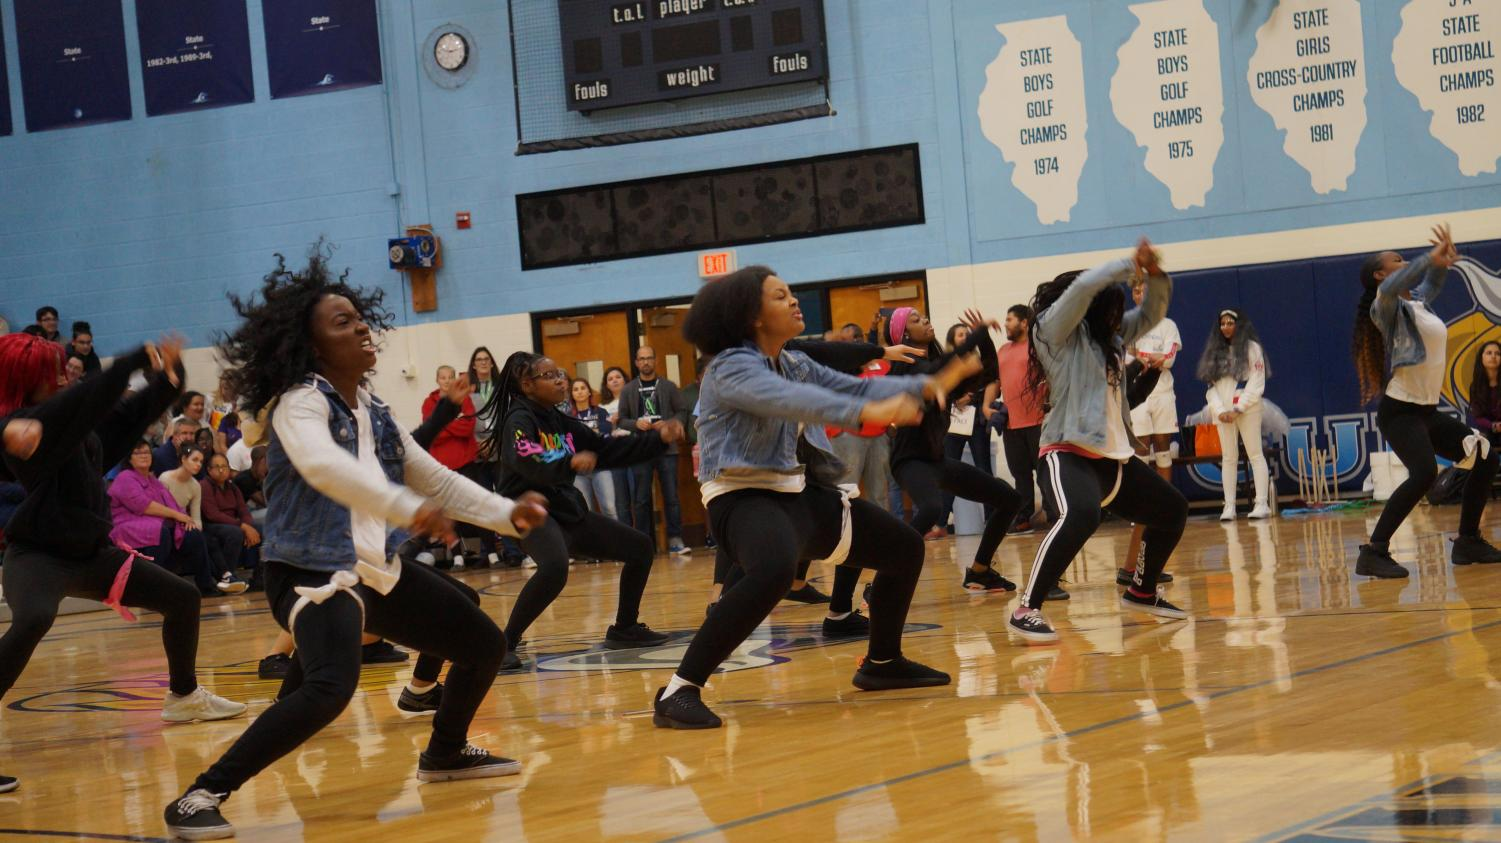 Workin' it. Dance team energizes crowd at Homecoming pep rally